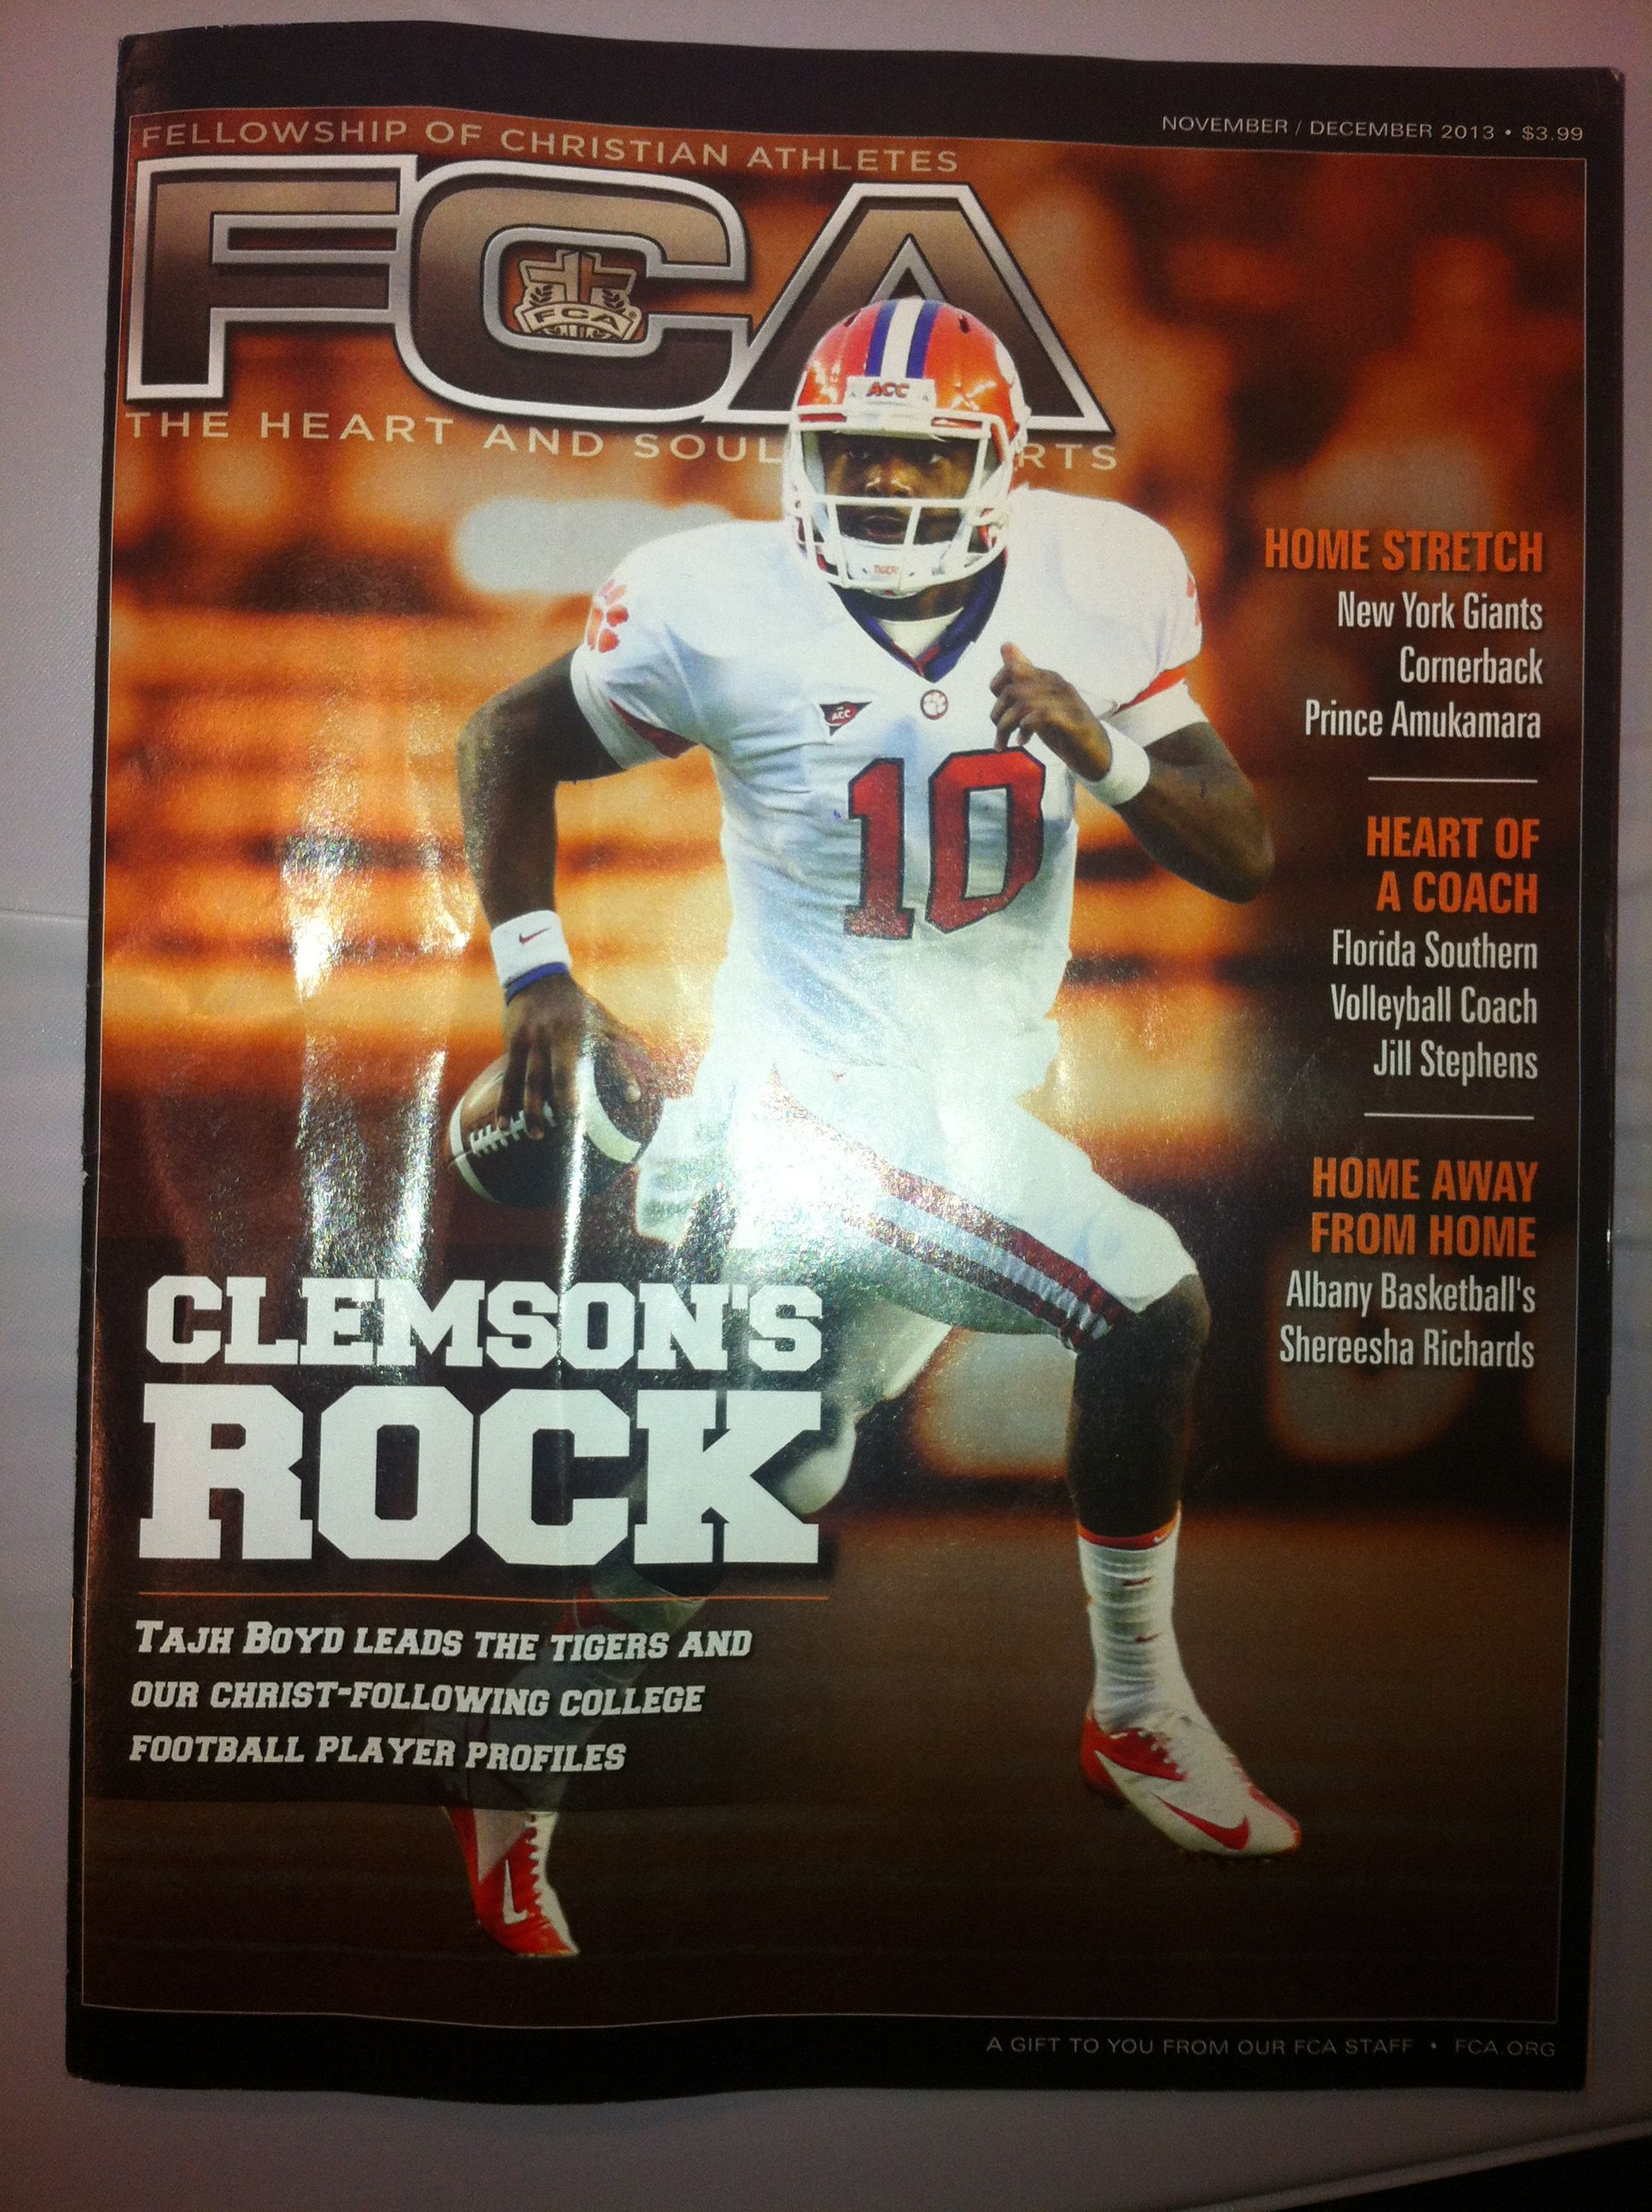 Tajh Boyd Cover Boy Fca Magazine Fall 2013 Christian Athletes Coaching Volleyball Clemson Football